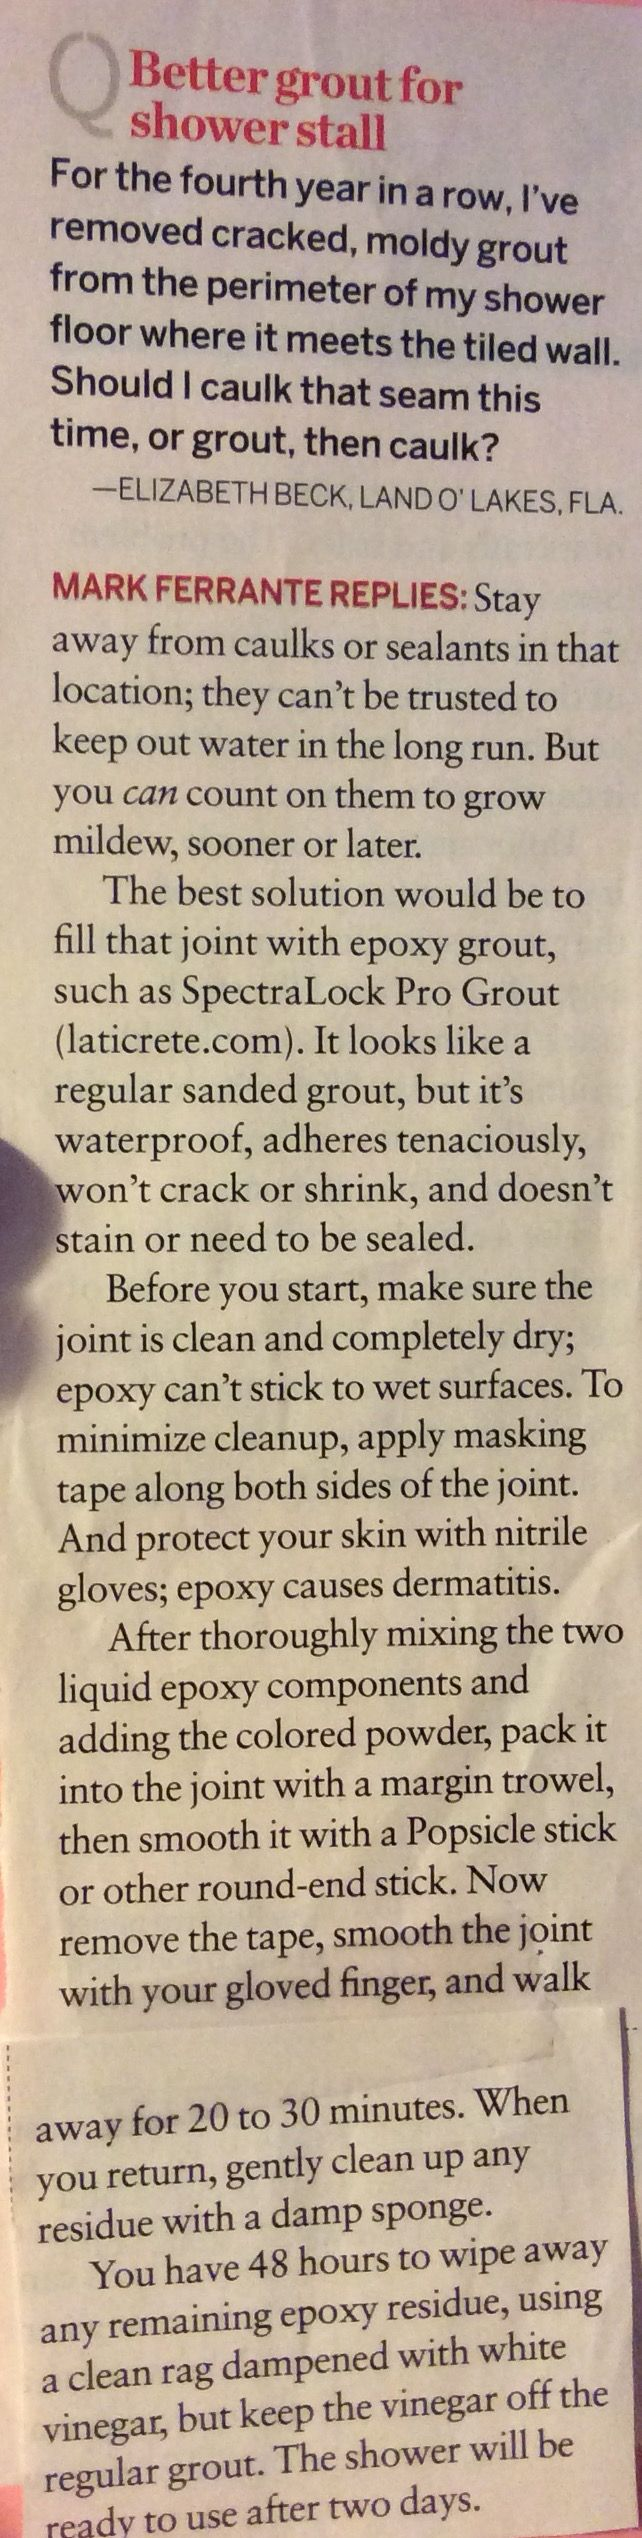 SpectraLock Pro Grout (Epoxy Grout). For showers. Waterproof, no Mold or stains, won't crack or shrink. From This Old House Mag. 2016